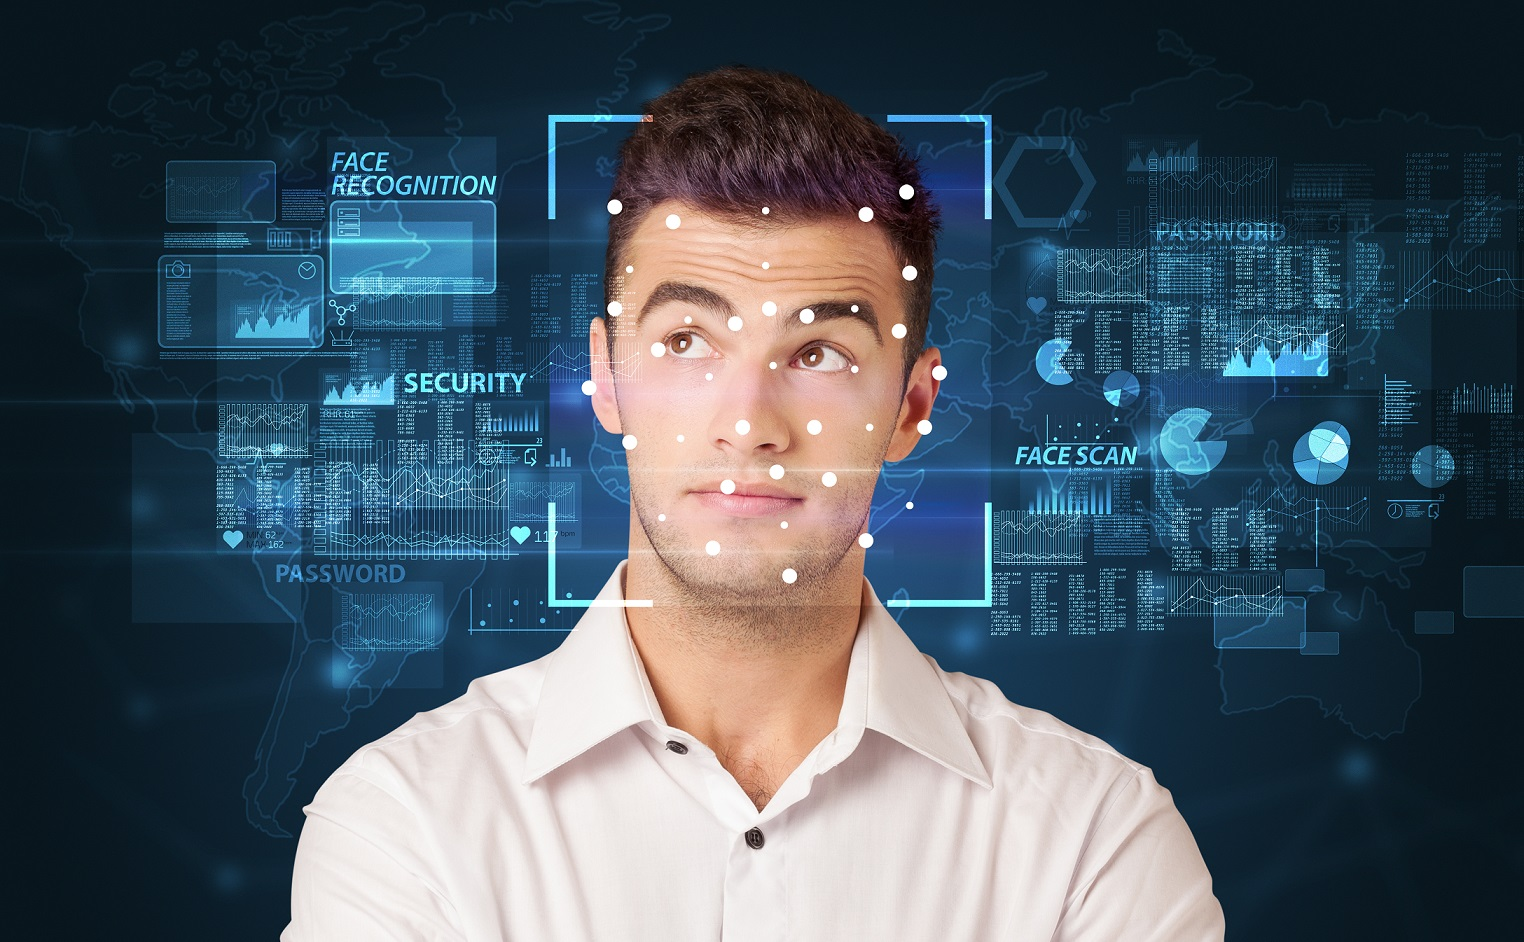 Defining Facial Detection, Facial Attributes and Facial Recognition